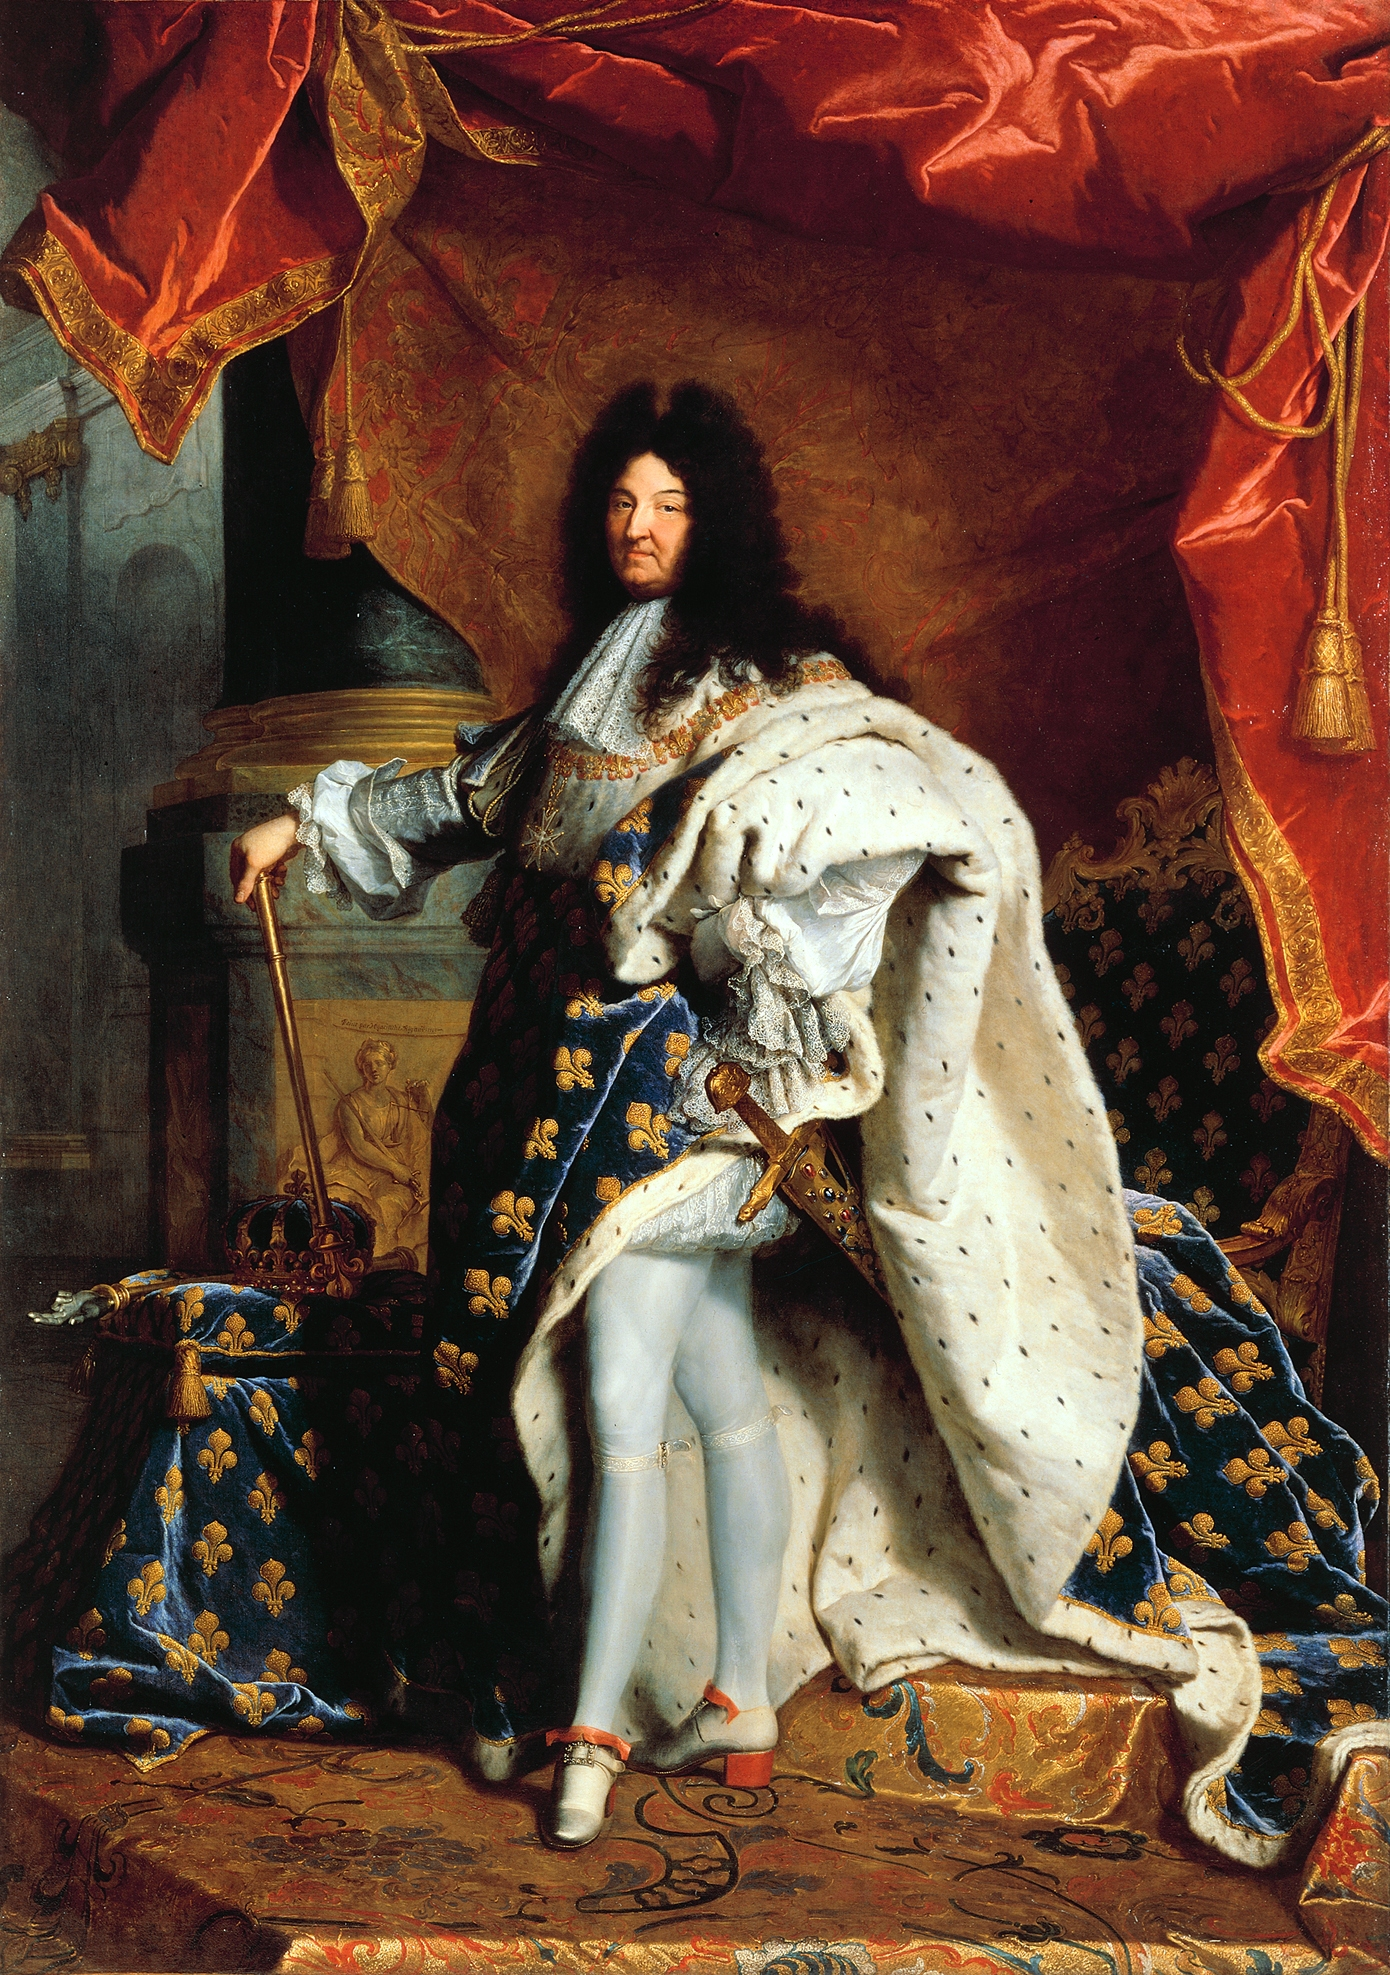 http://upload.wikimedia.org/wikipedia/commons/5/5f/Louis_XIV_of_France.jpg?width=400